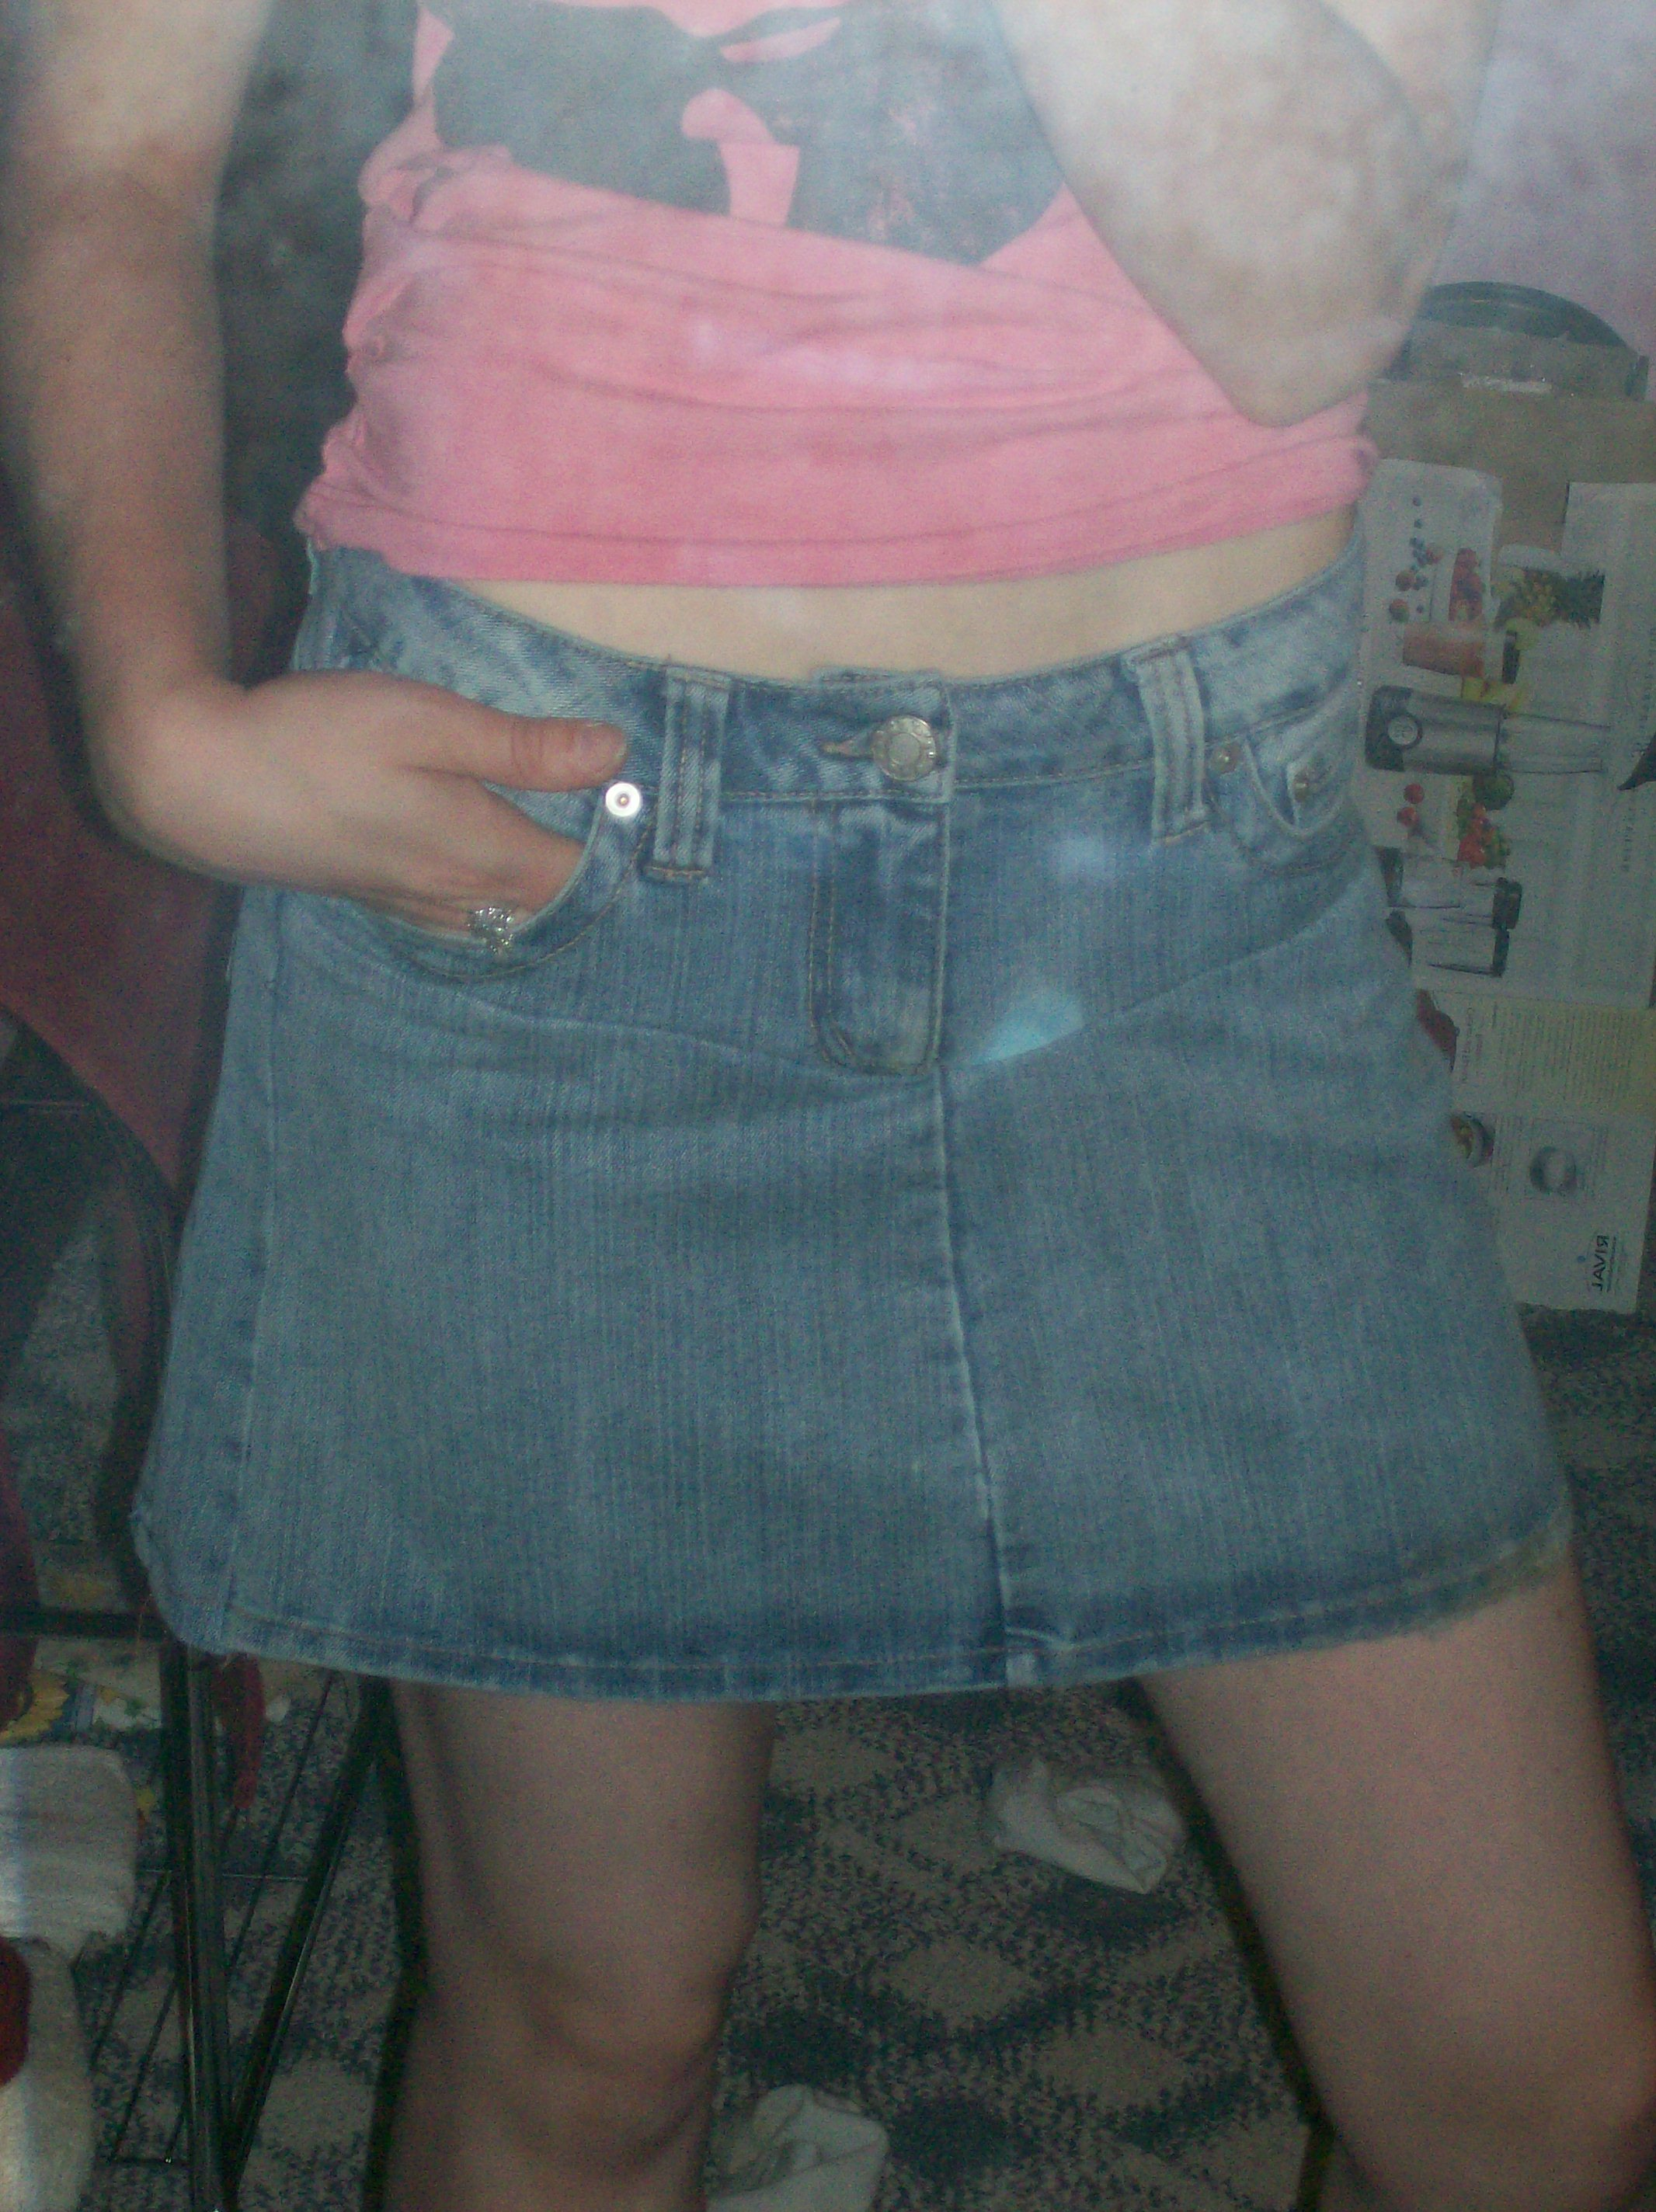 Picture of Turned Ruined Jeans Into an A-line Skirt!